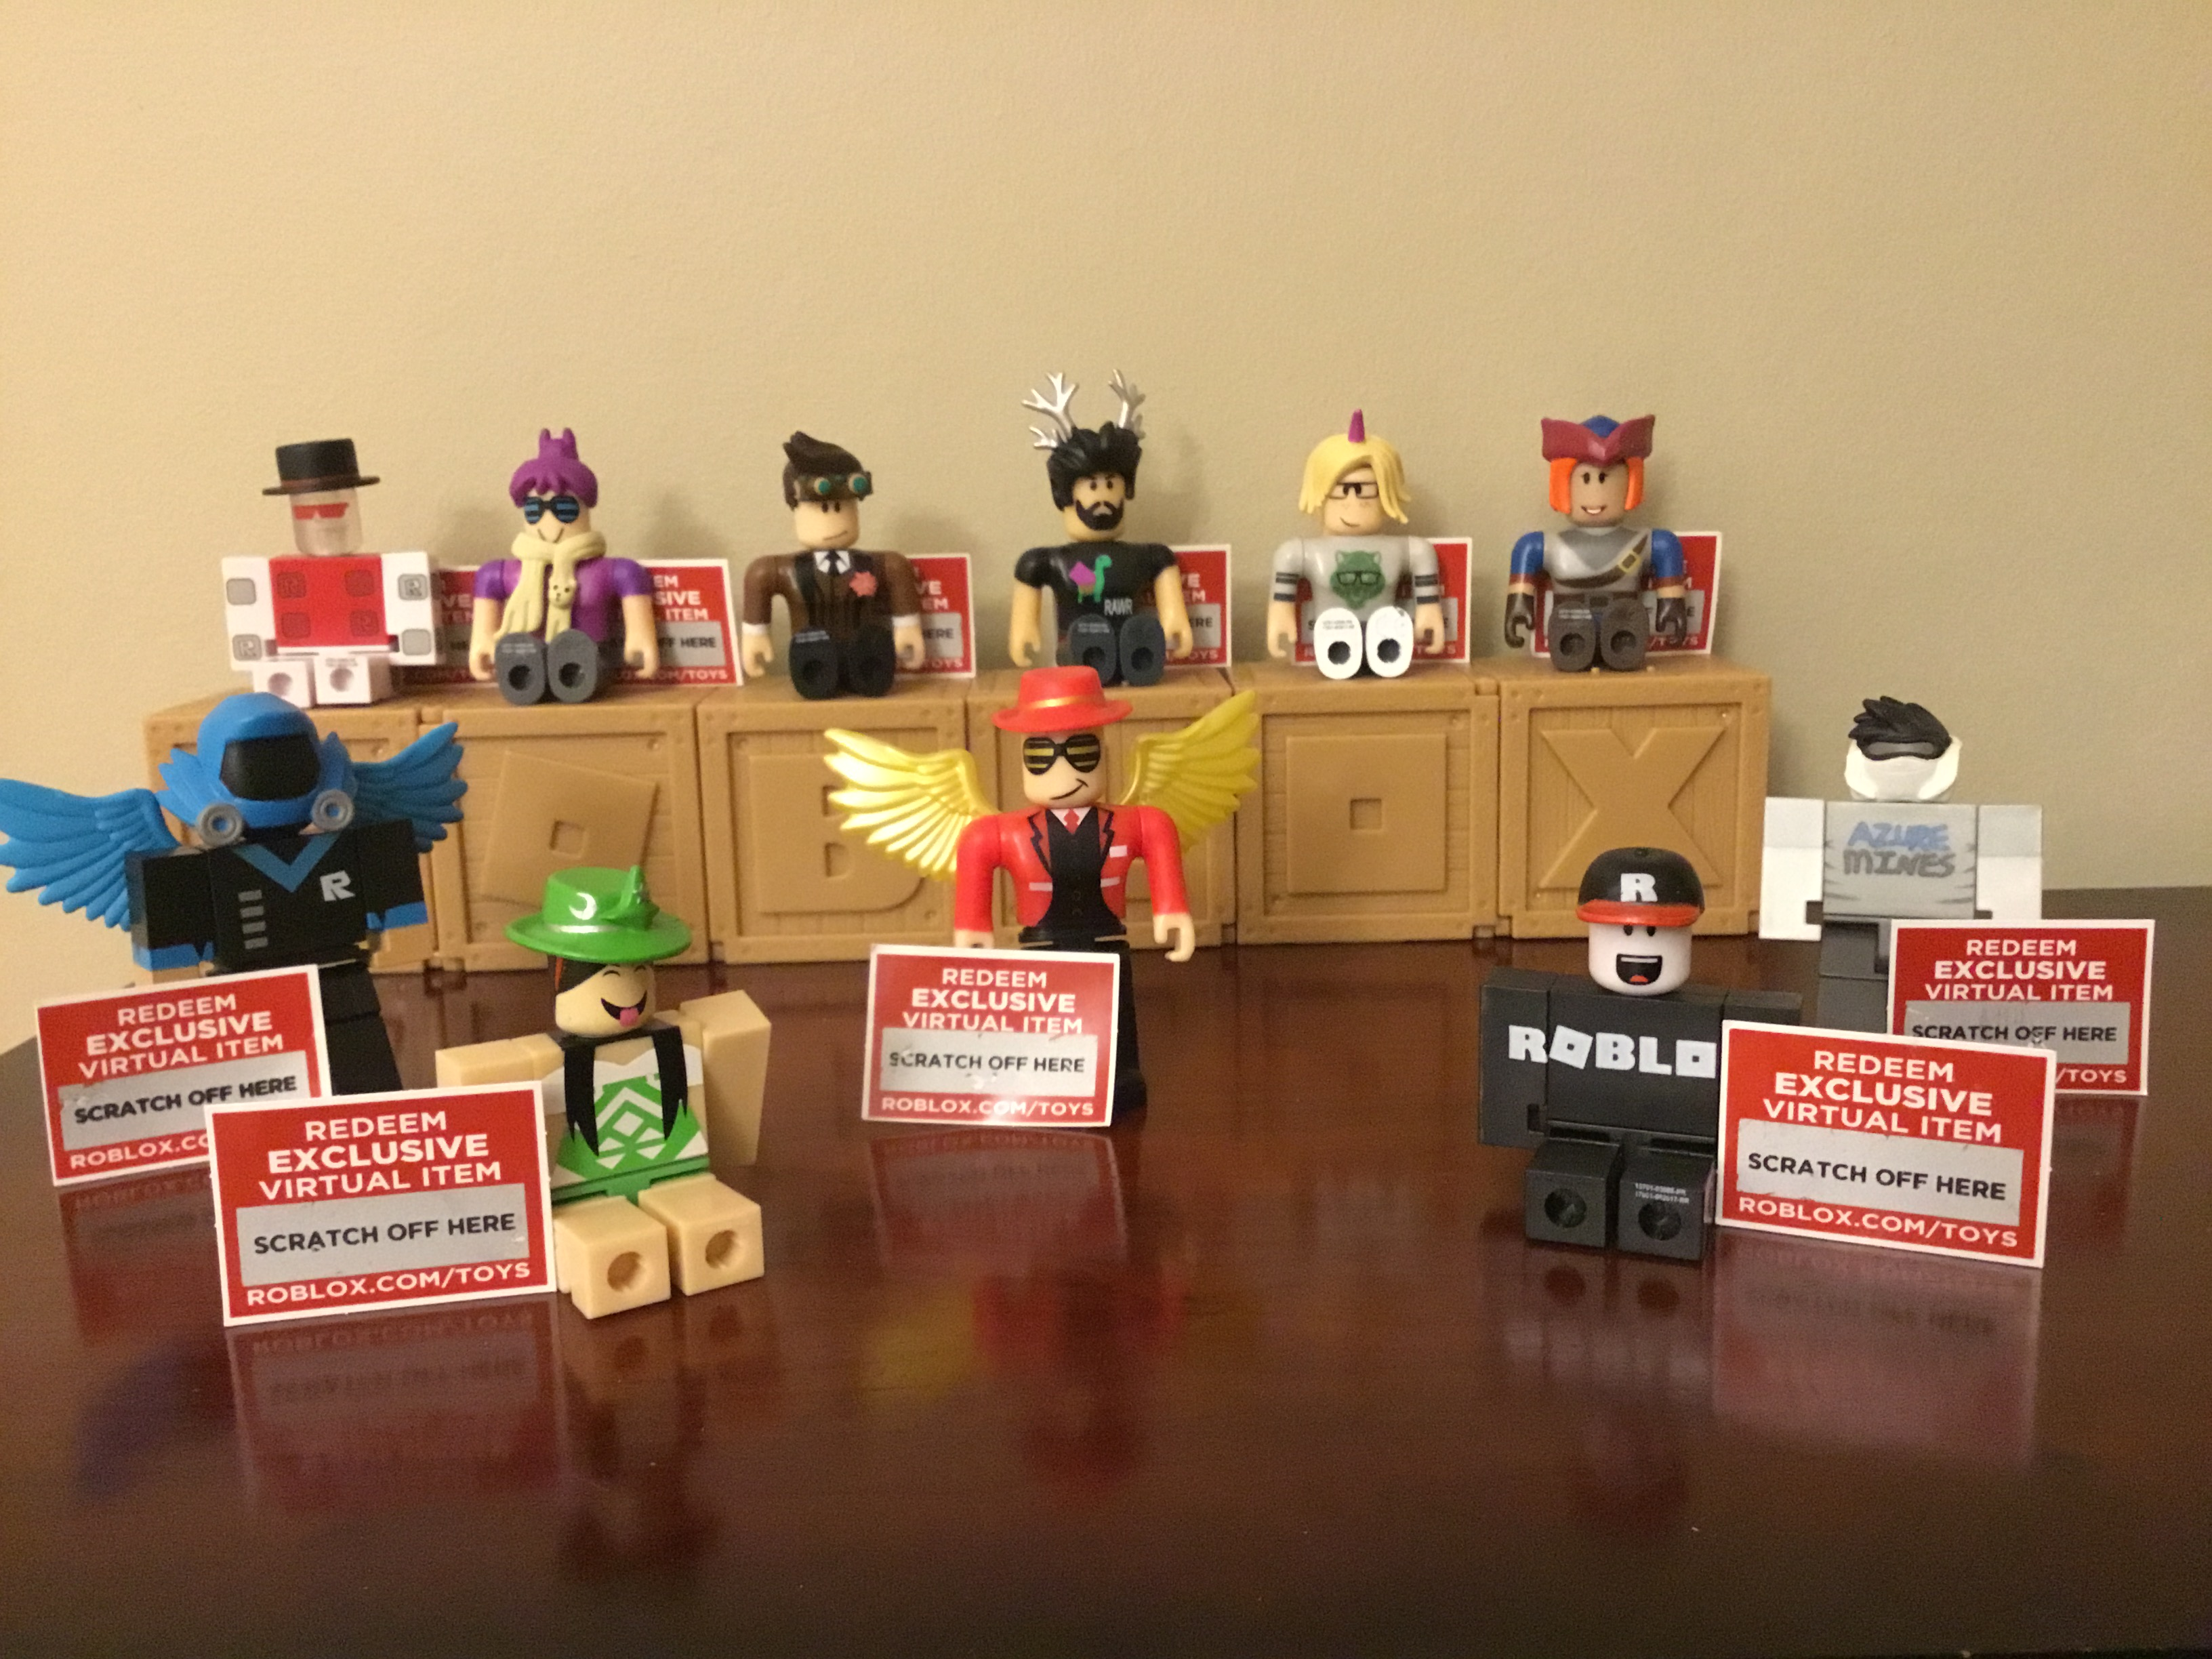 Roblox 11 Toys With Unredeemed Codes Sold By Robloxian Store On